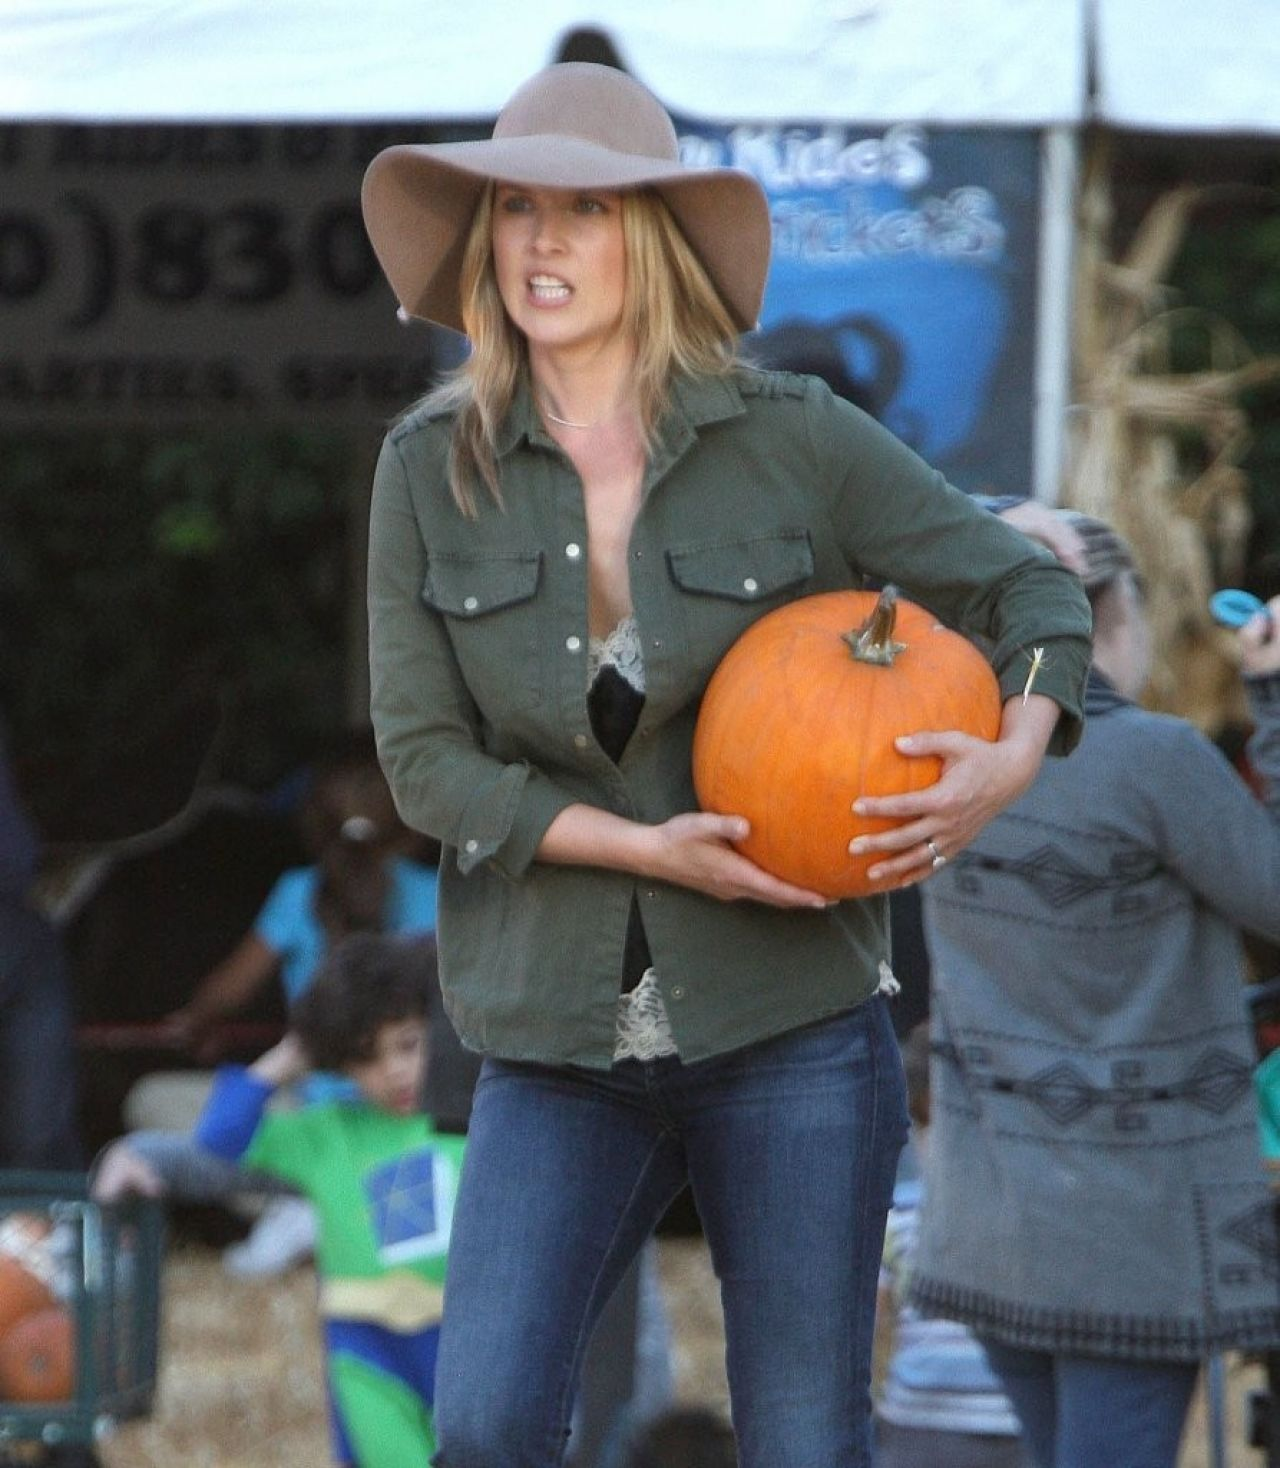 Ali Larter in Jeans at Mr. bones Pumpkin Patch in Beverly Hills